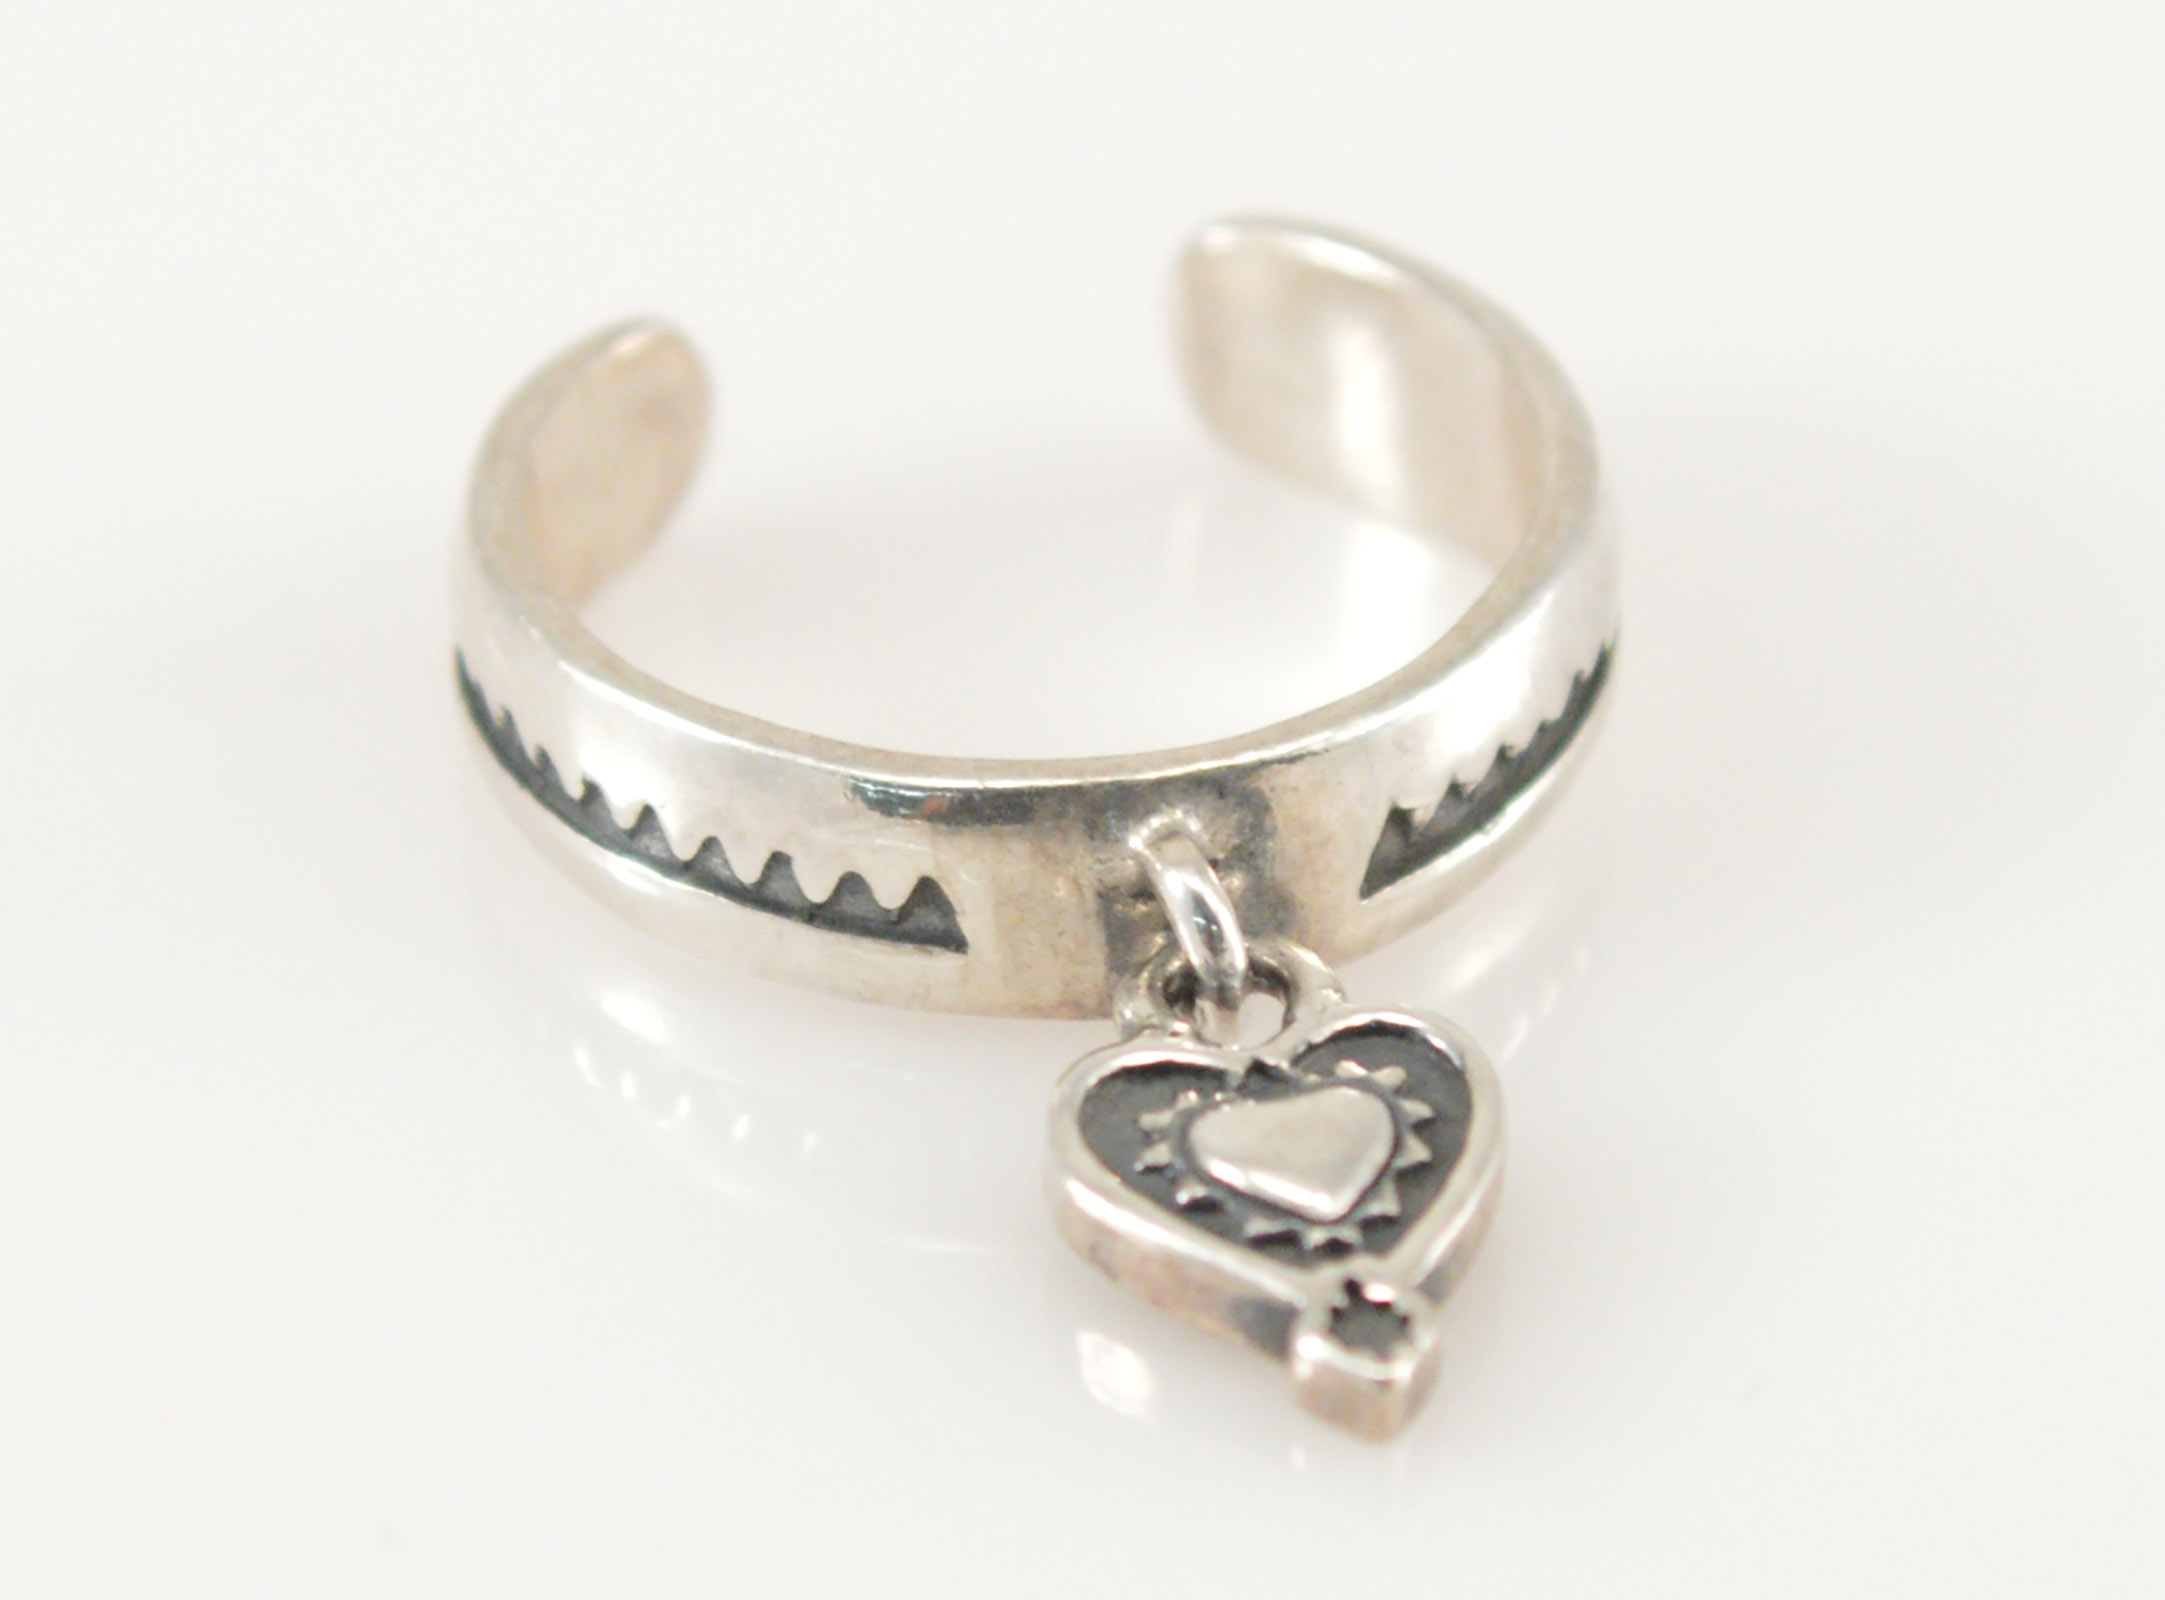 Solid Silver Silpada Toe Ring With Heart Dangle Adjustable Regarding Most Popular Non Adjustable Toe Rings (View 6 of 15)